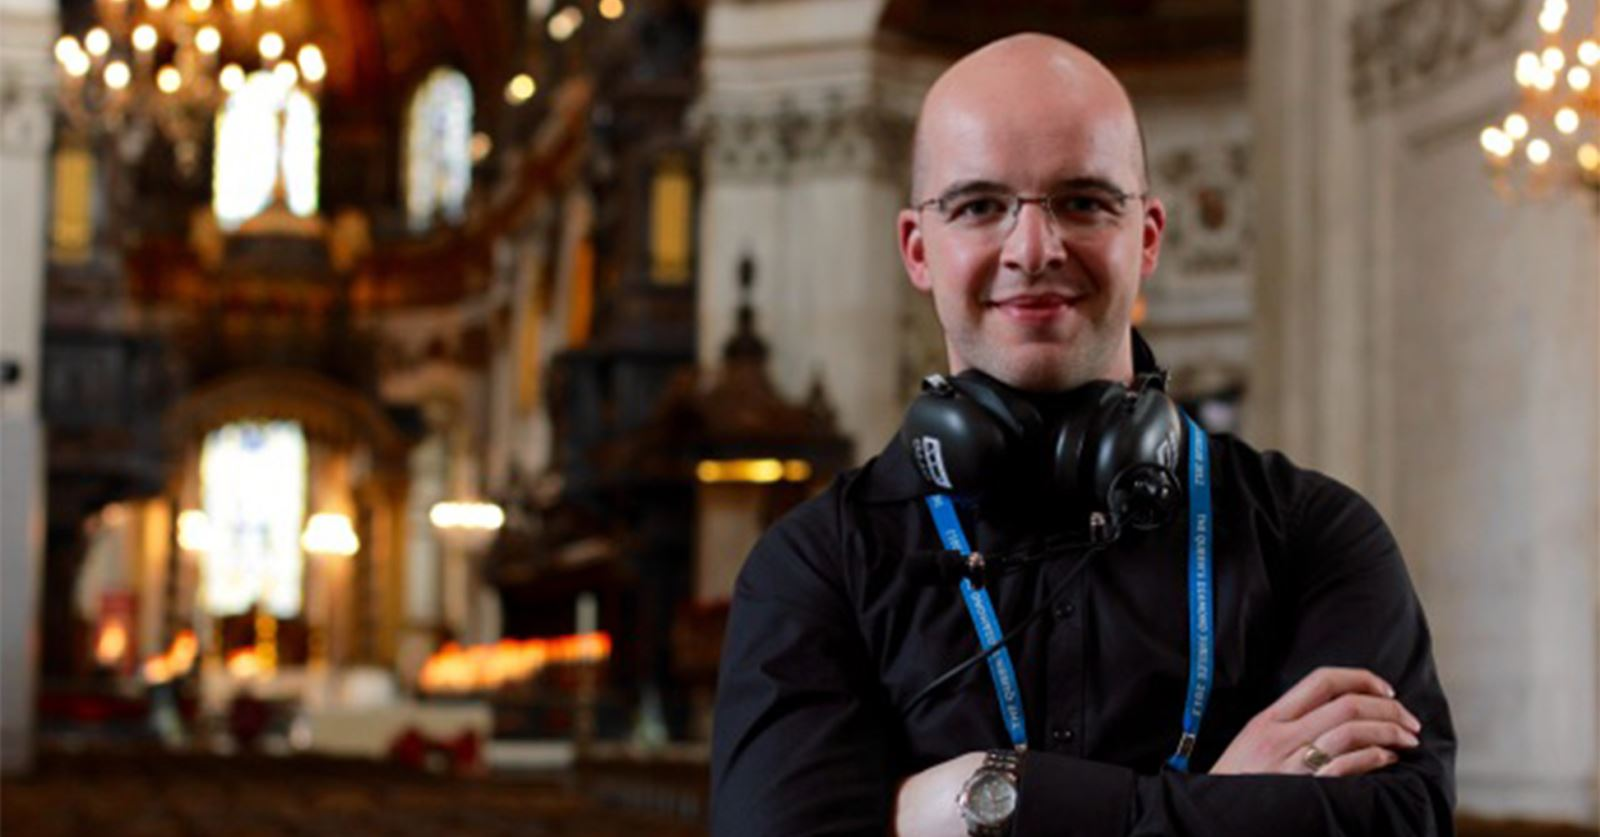 New GTC member: Freelance camera operator Dominic Hyndman working in St Paul's Cathedral